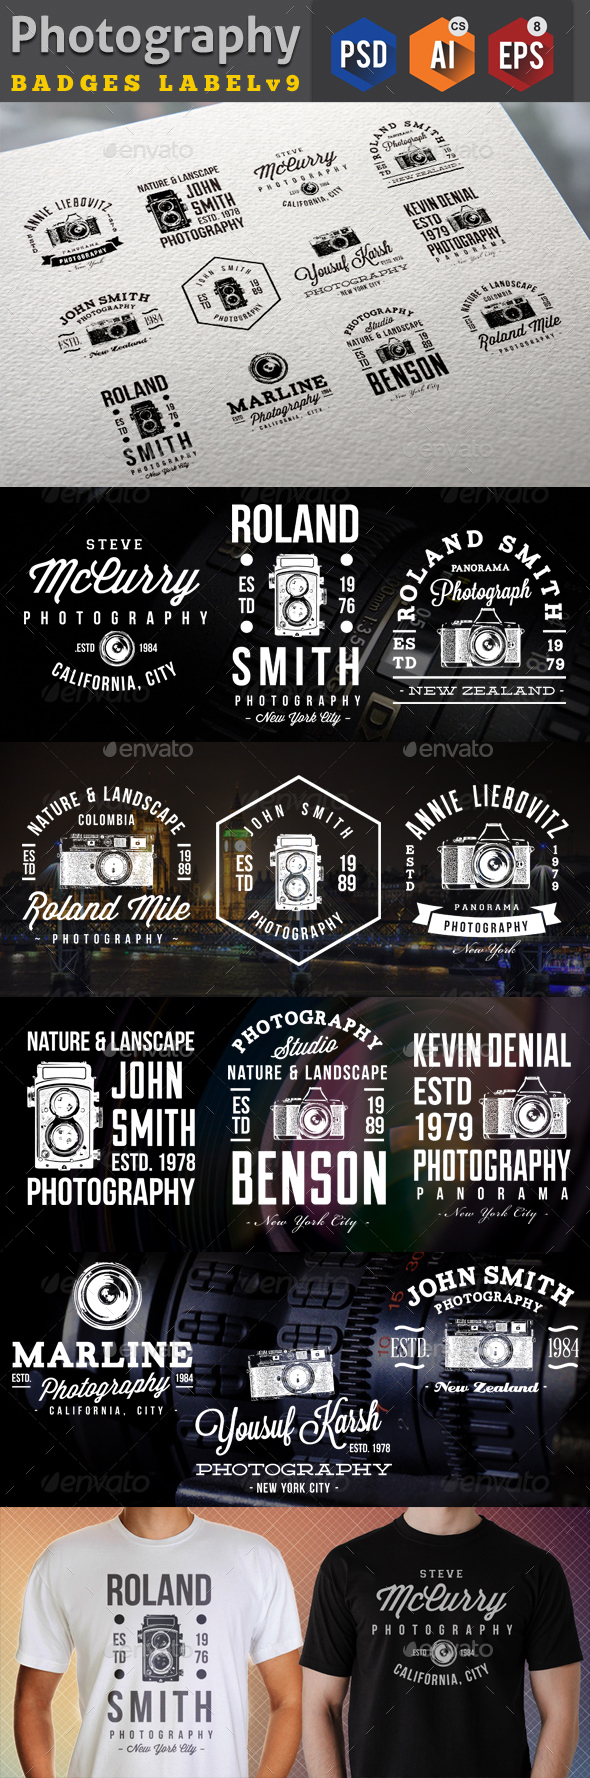 Photography Badges Labels Template Psd Eps Ai Design Download